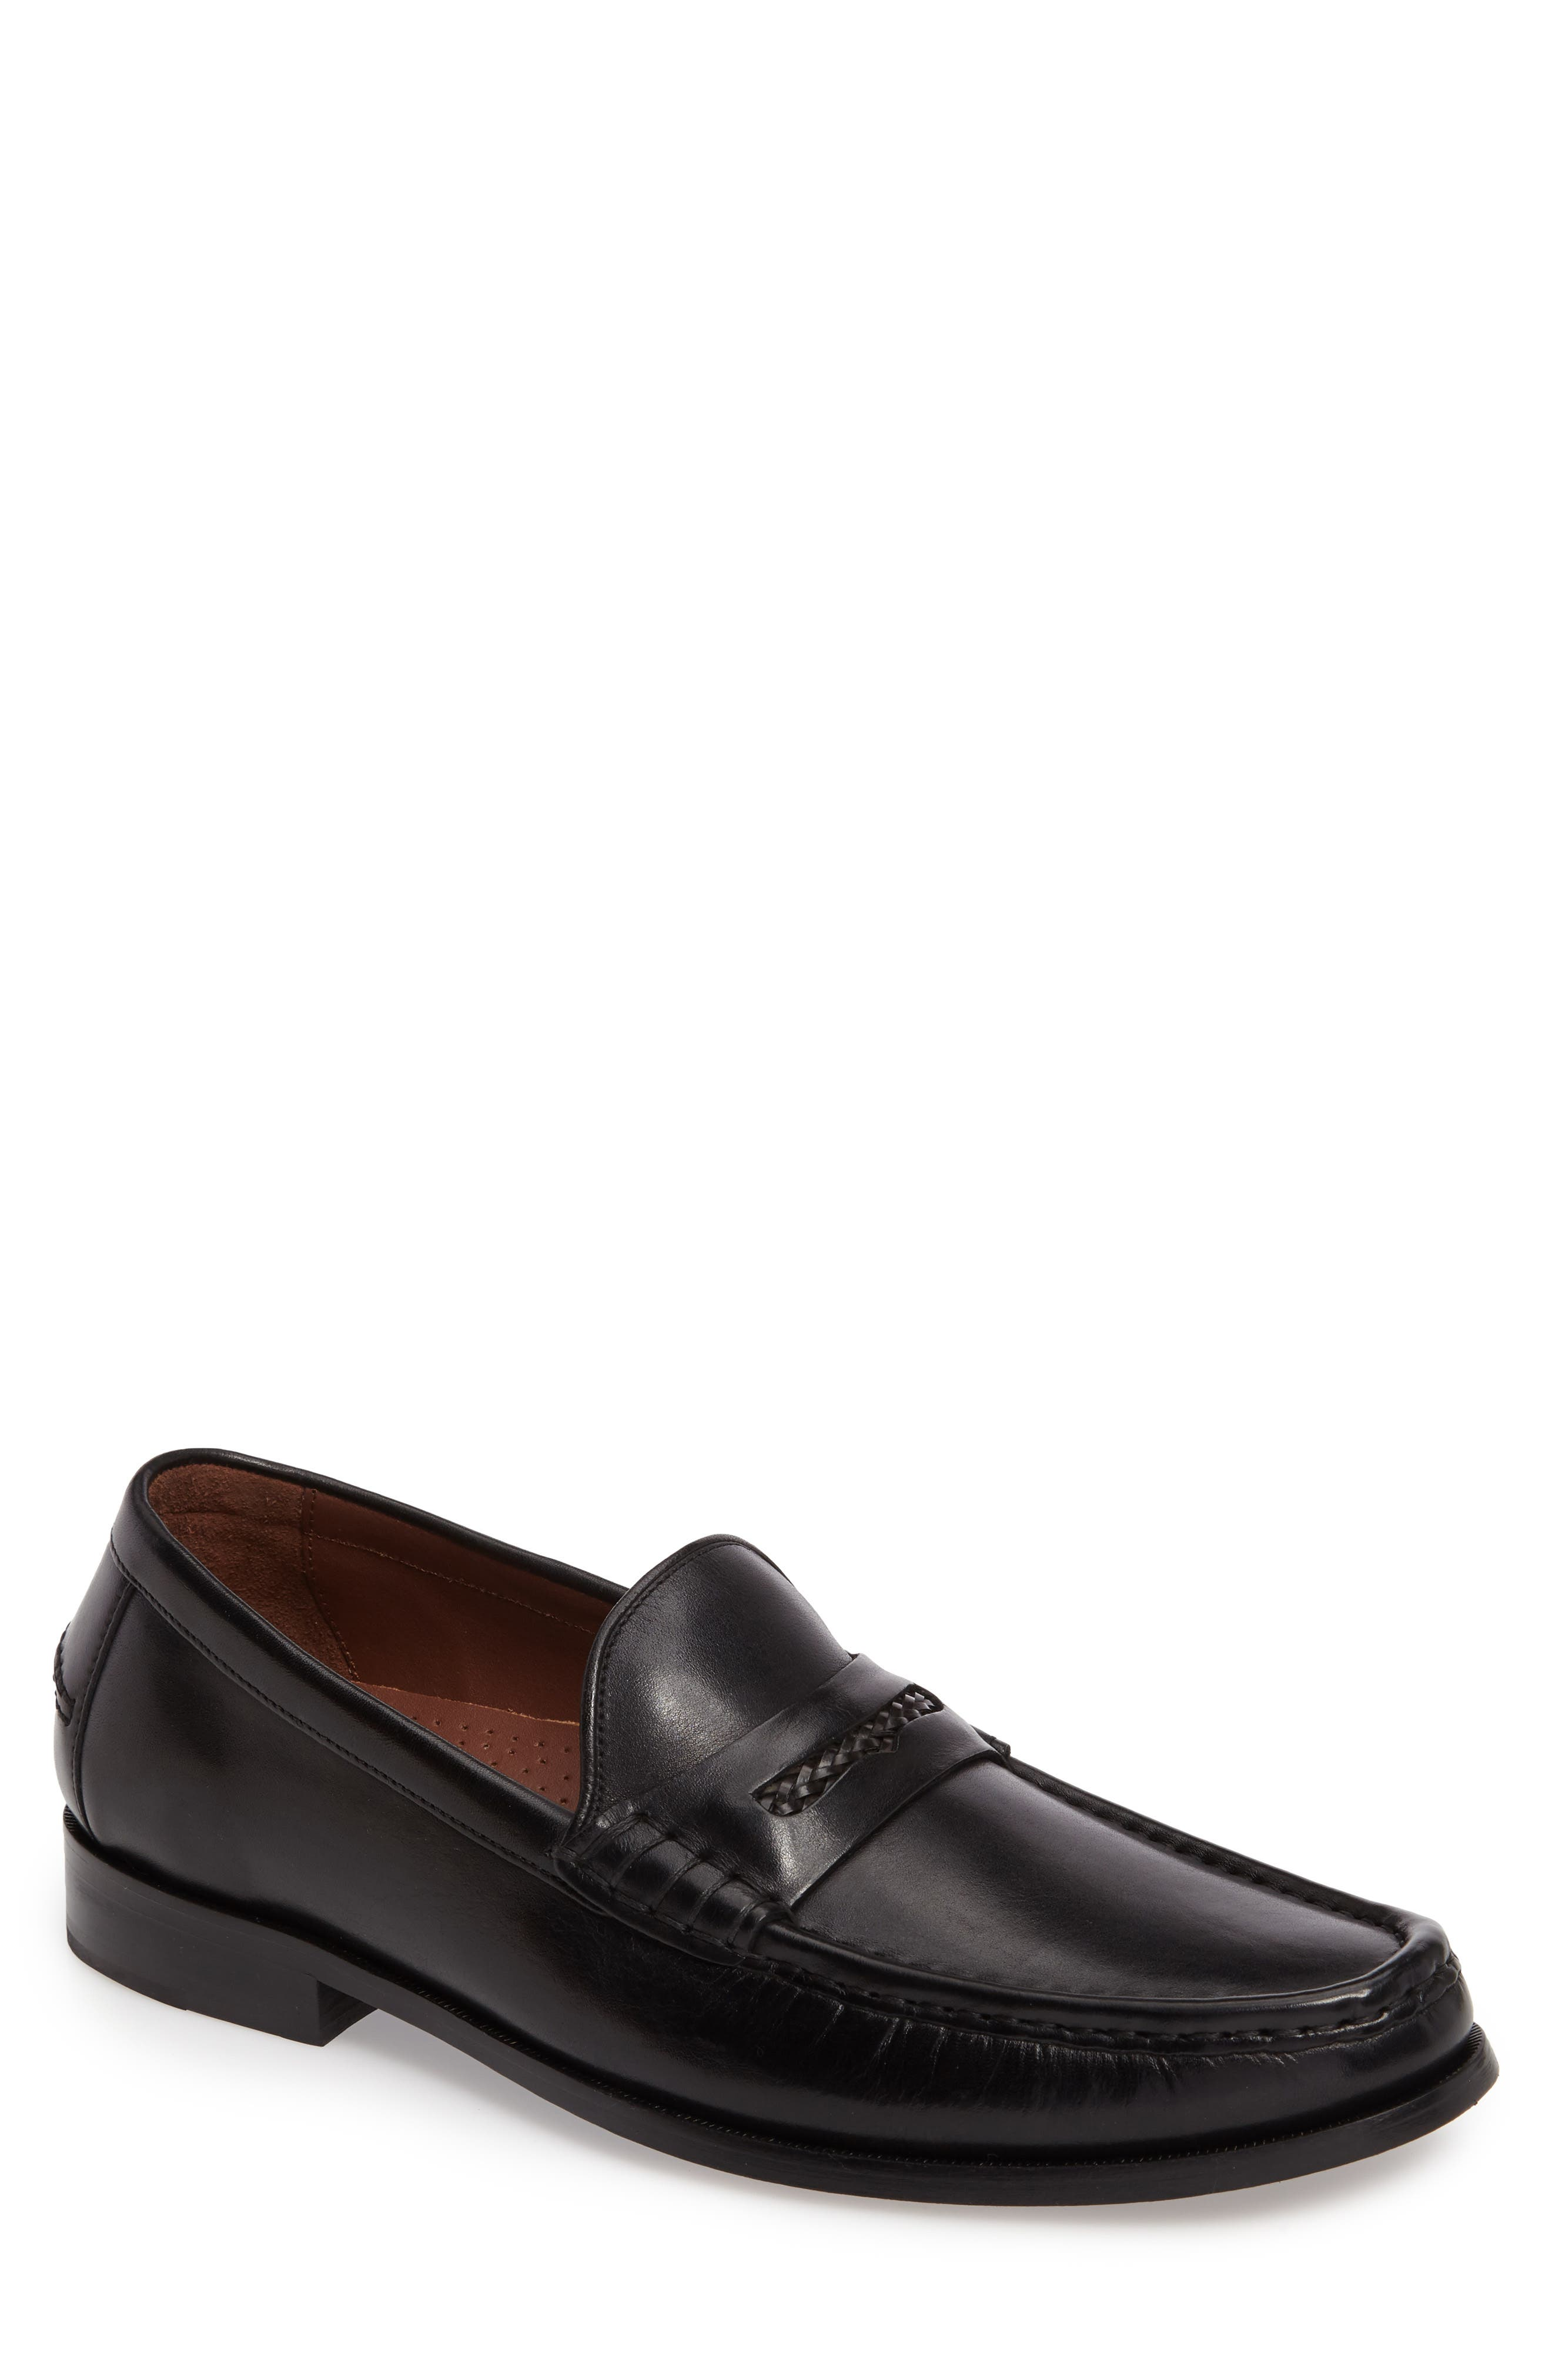 'Pinch Gotham' Penny Loafer,                         Main,                         color, 001